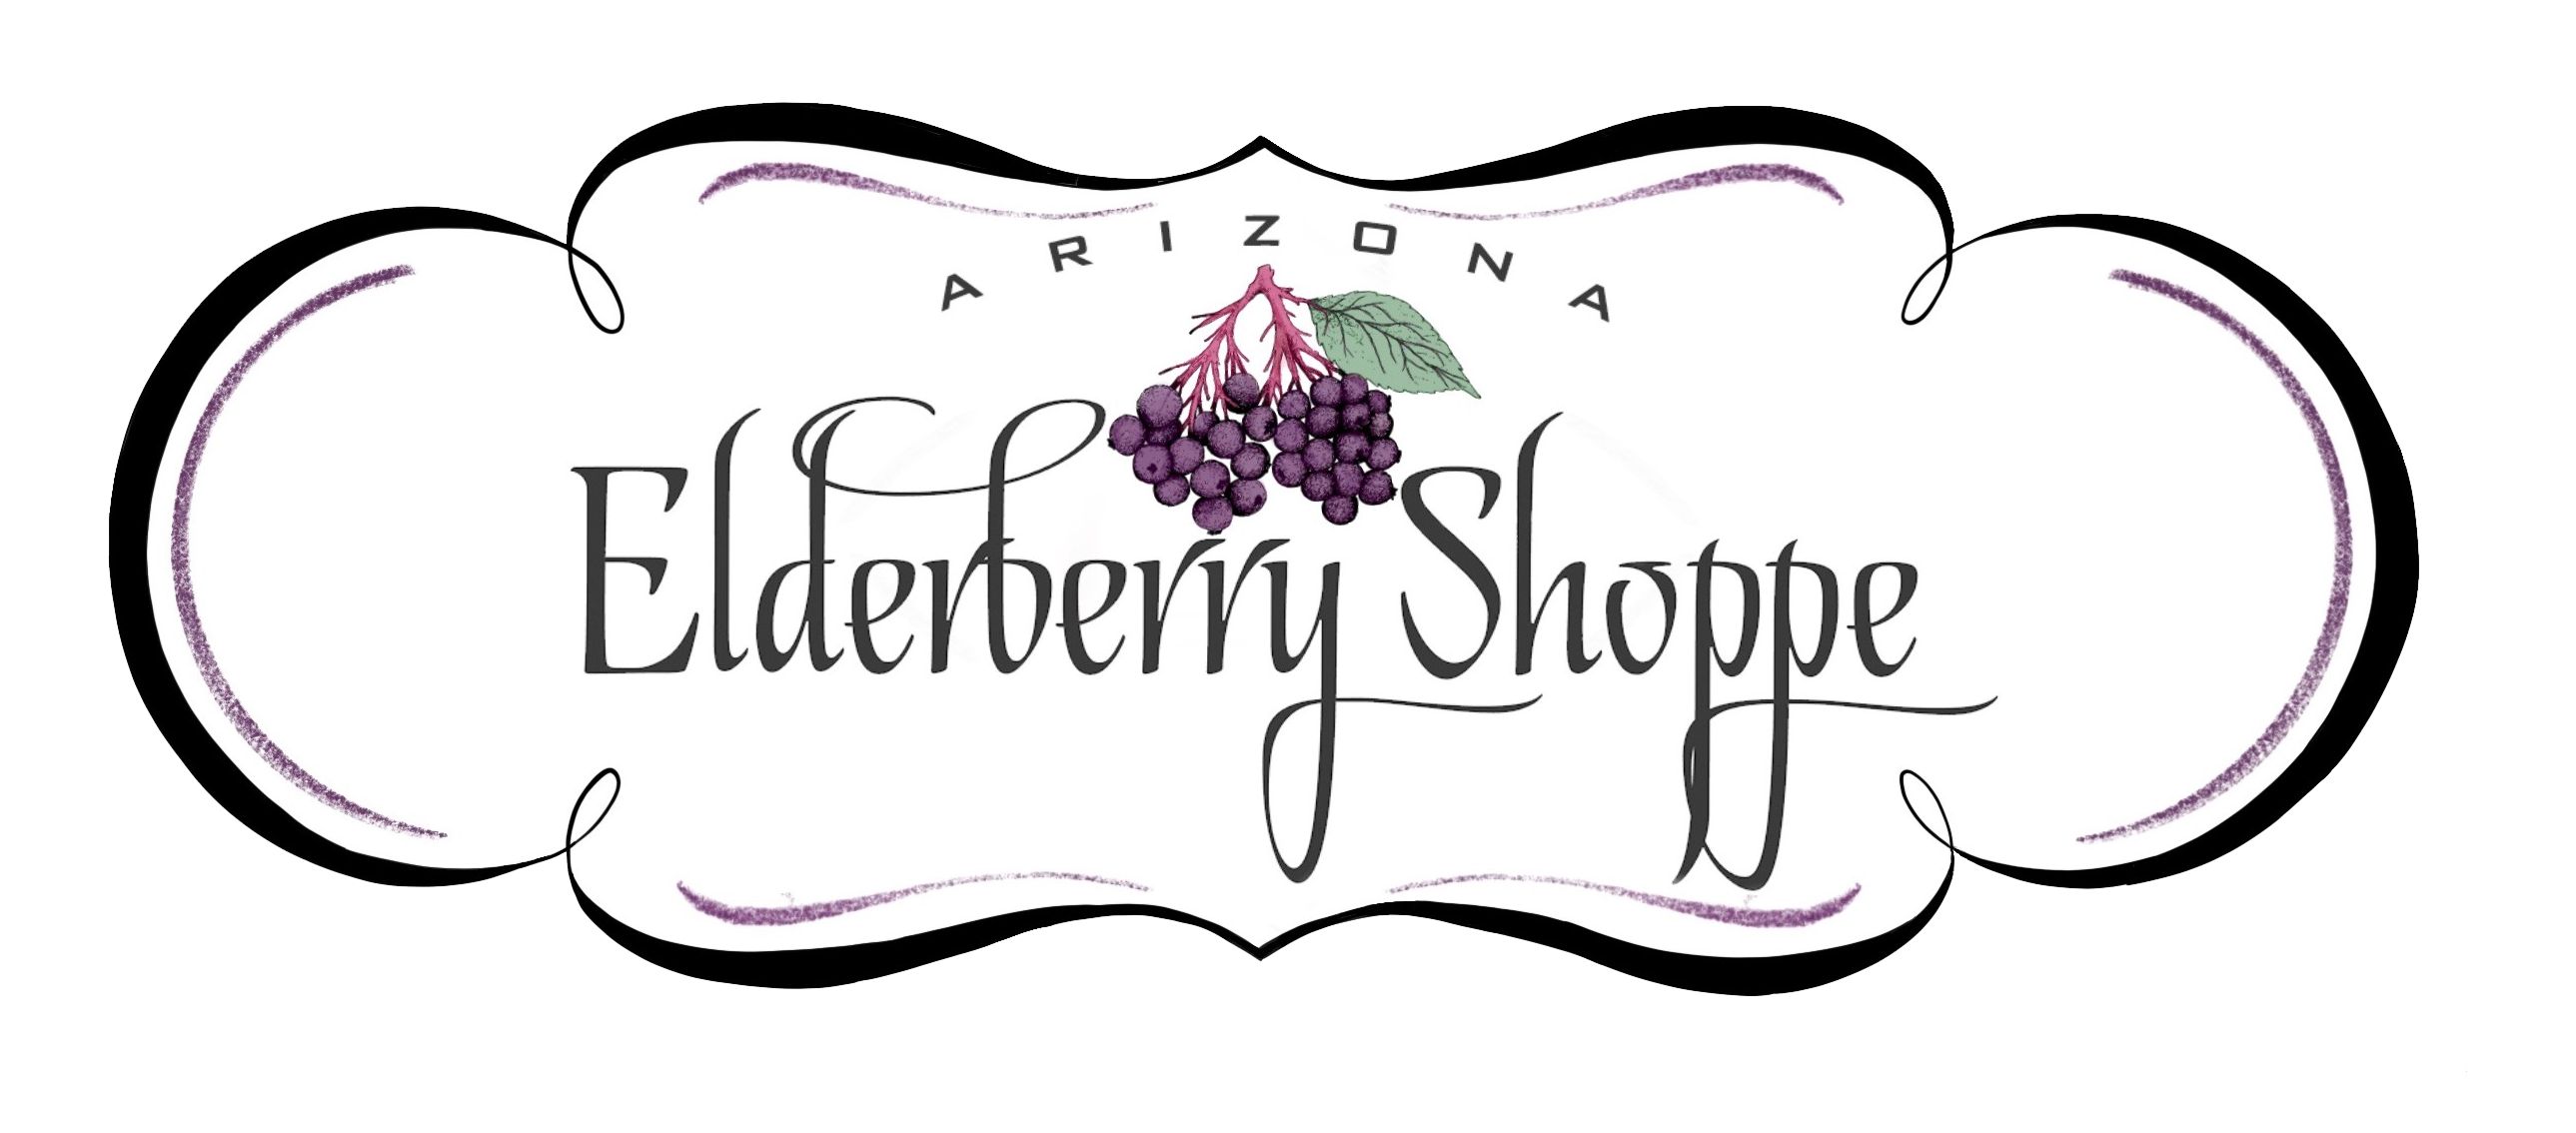 Arizona Elderberry Shoppe